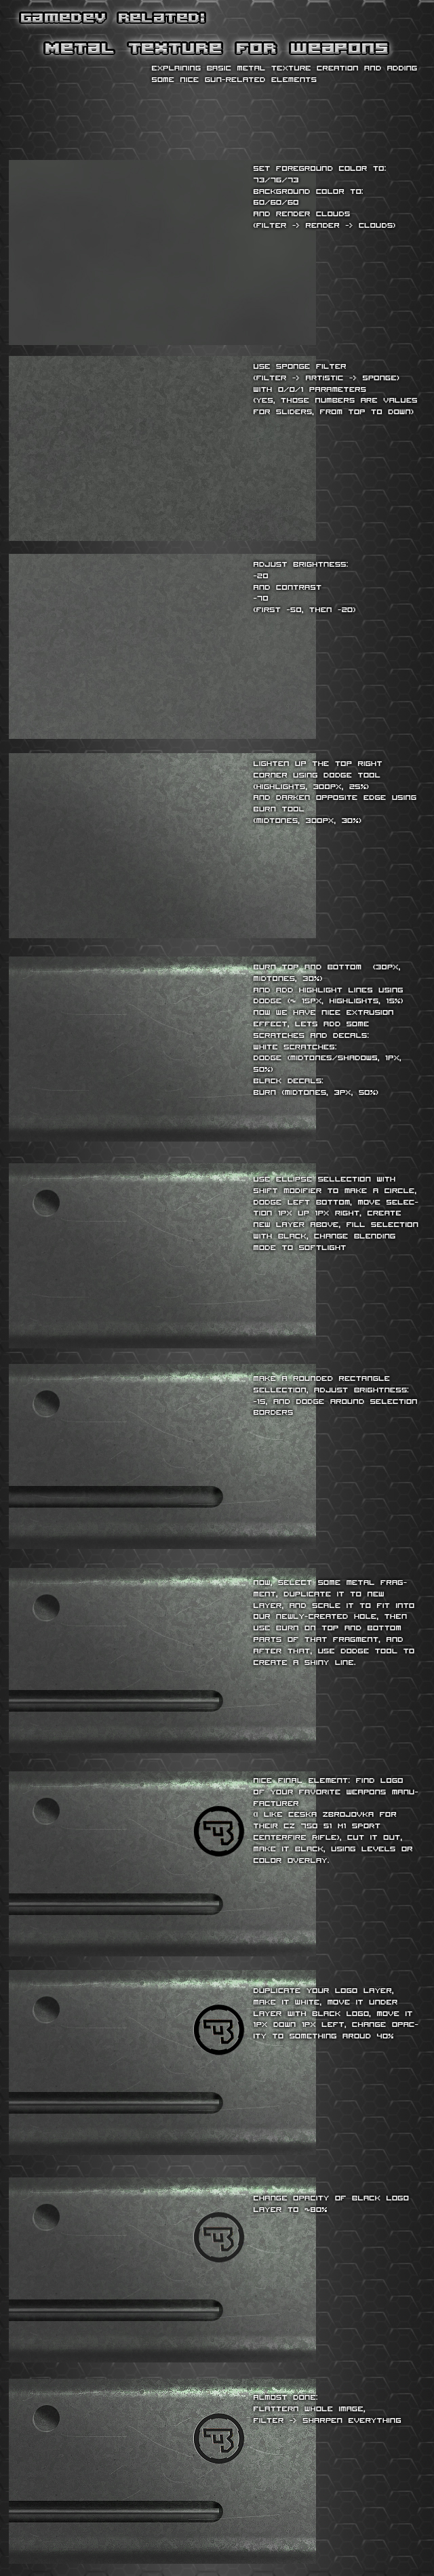 Metal texture tutorial by Pirosan